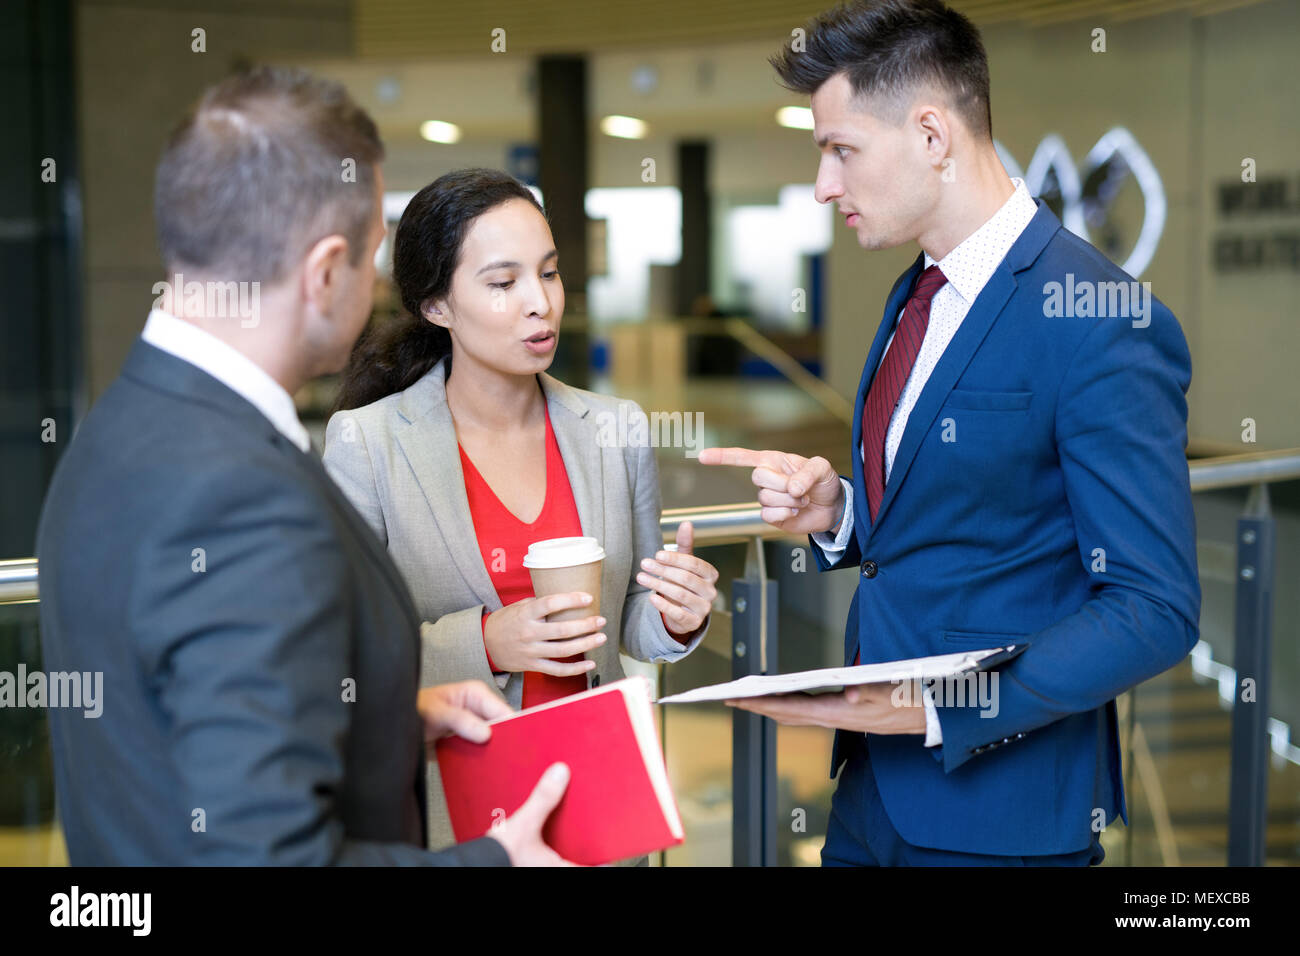 Business people discussing conference topics - Stock Image